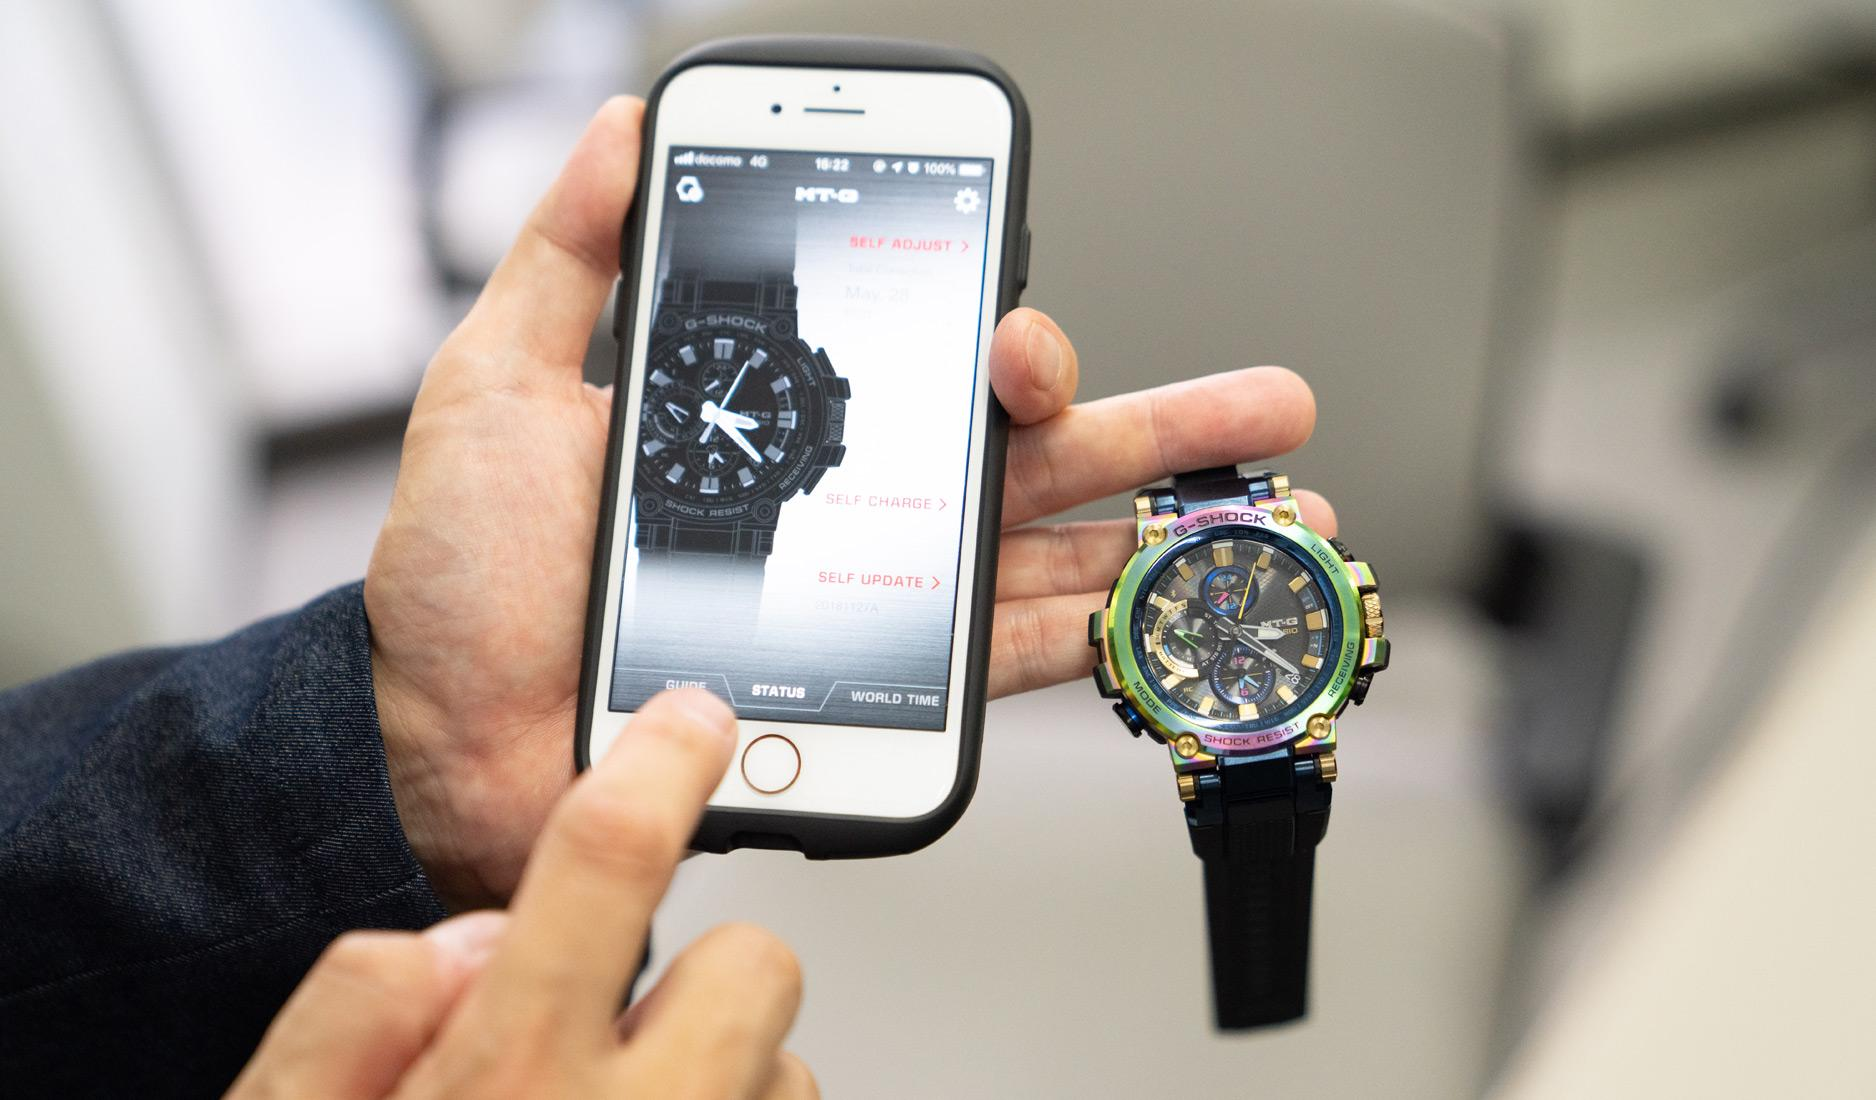 Bluetooth technology in the G-Shock MTG-B1000RB limited edition